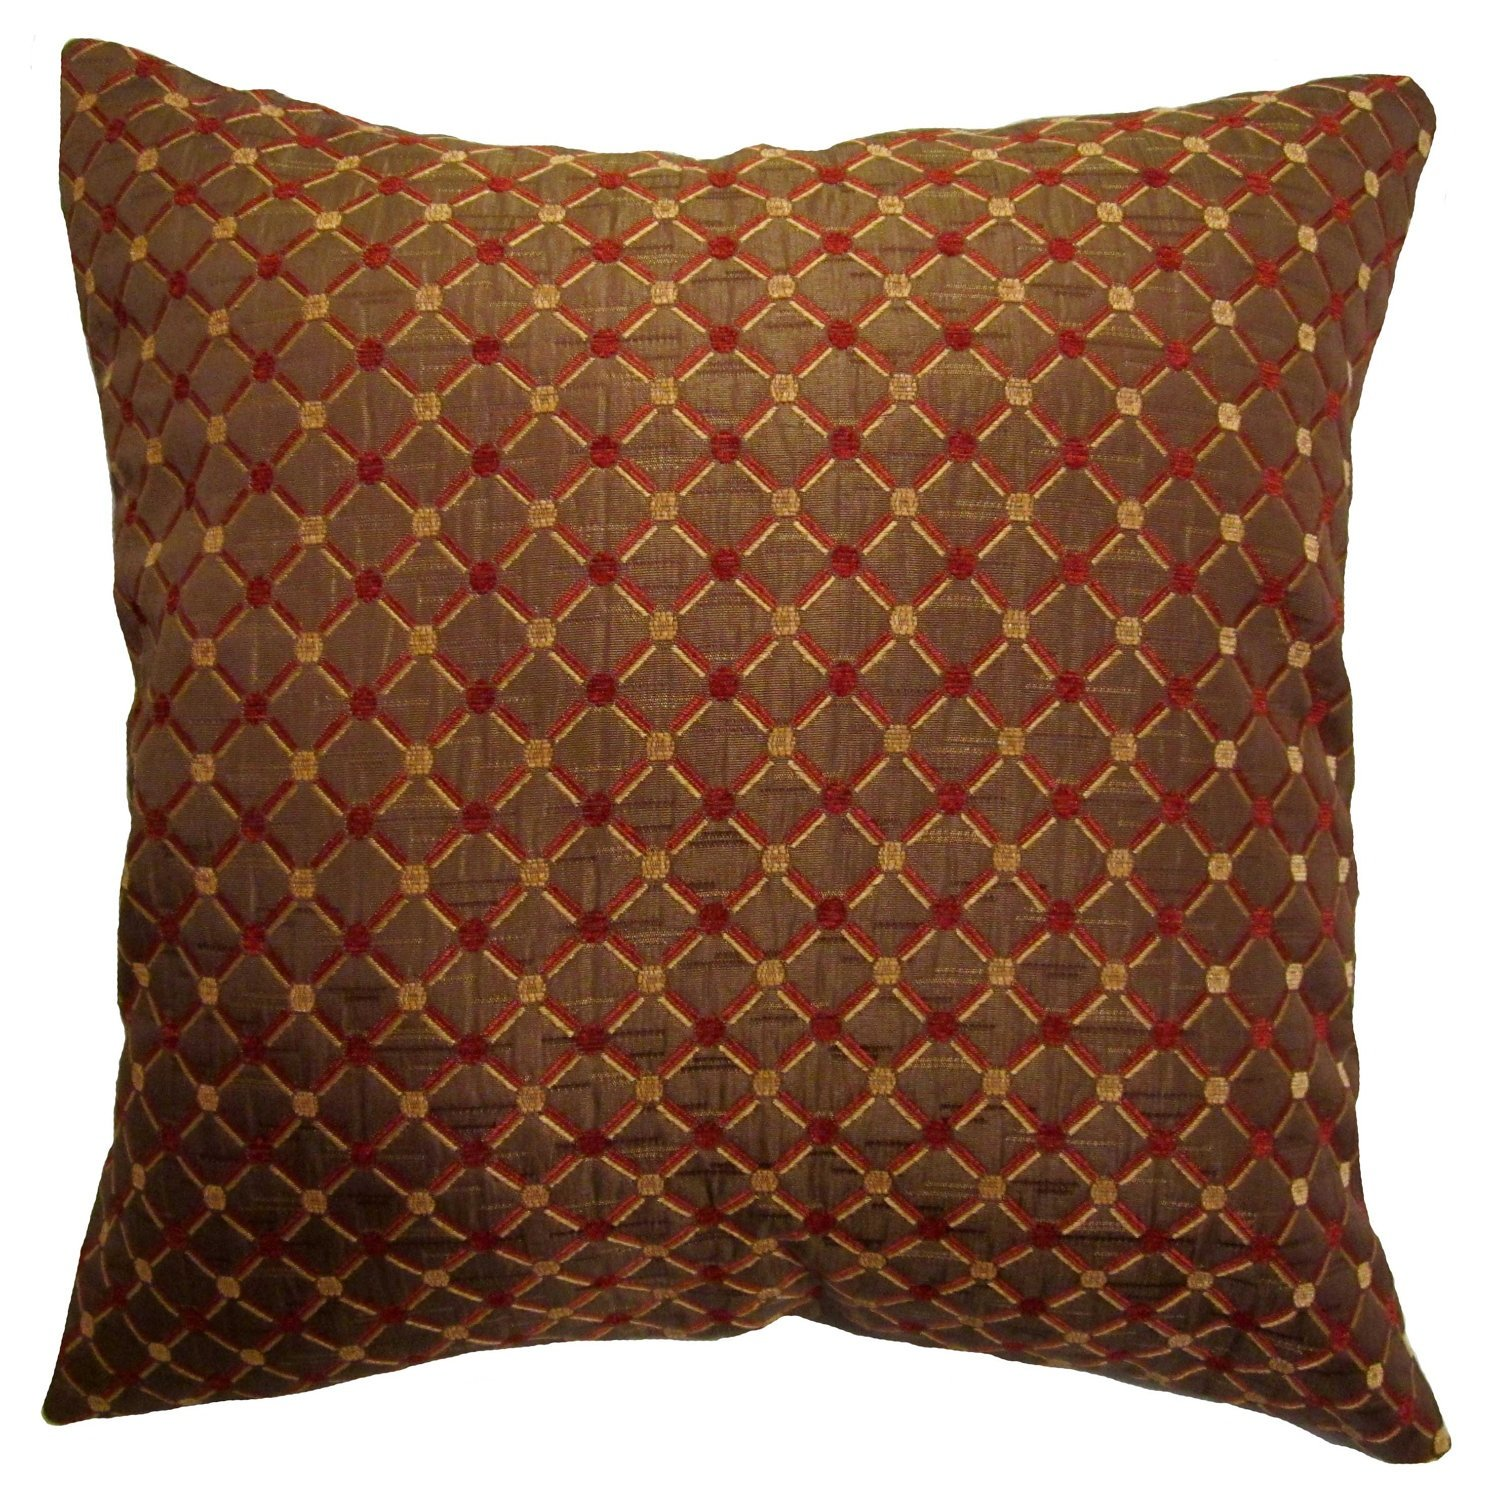 Amazon.com: 18x18 Burgundy and Gold Dots Brocade Decorative Throw ...